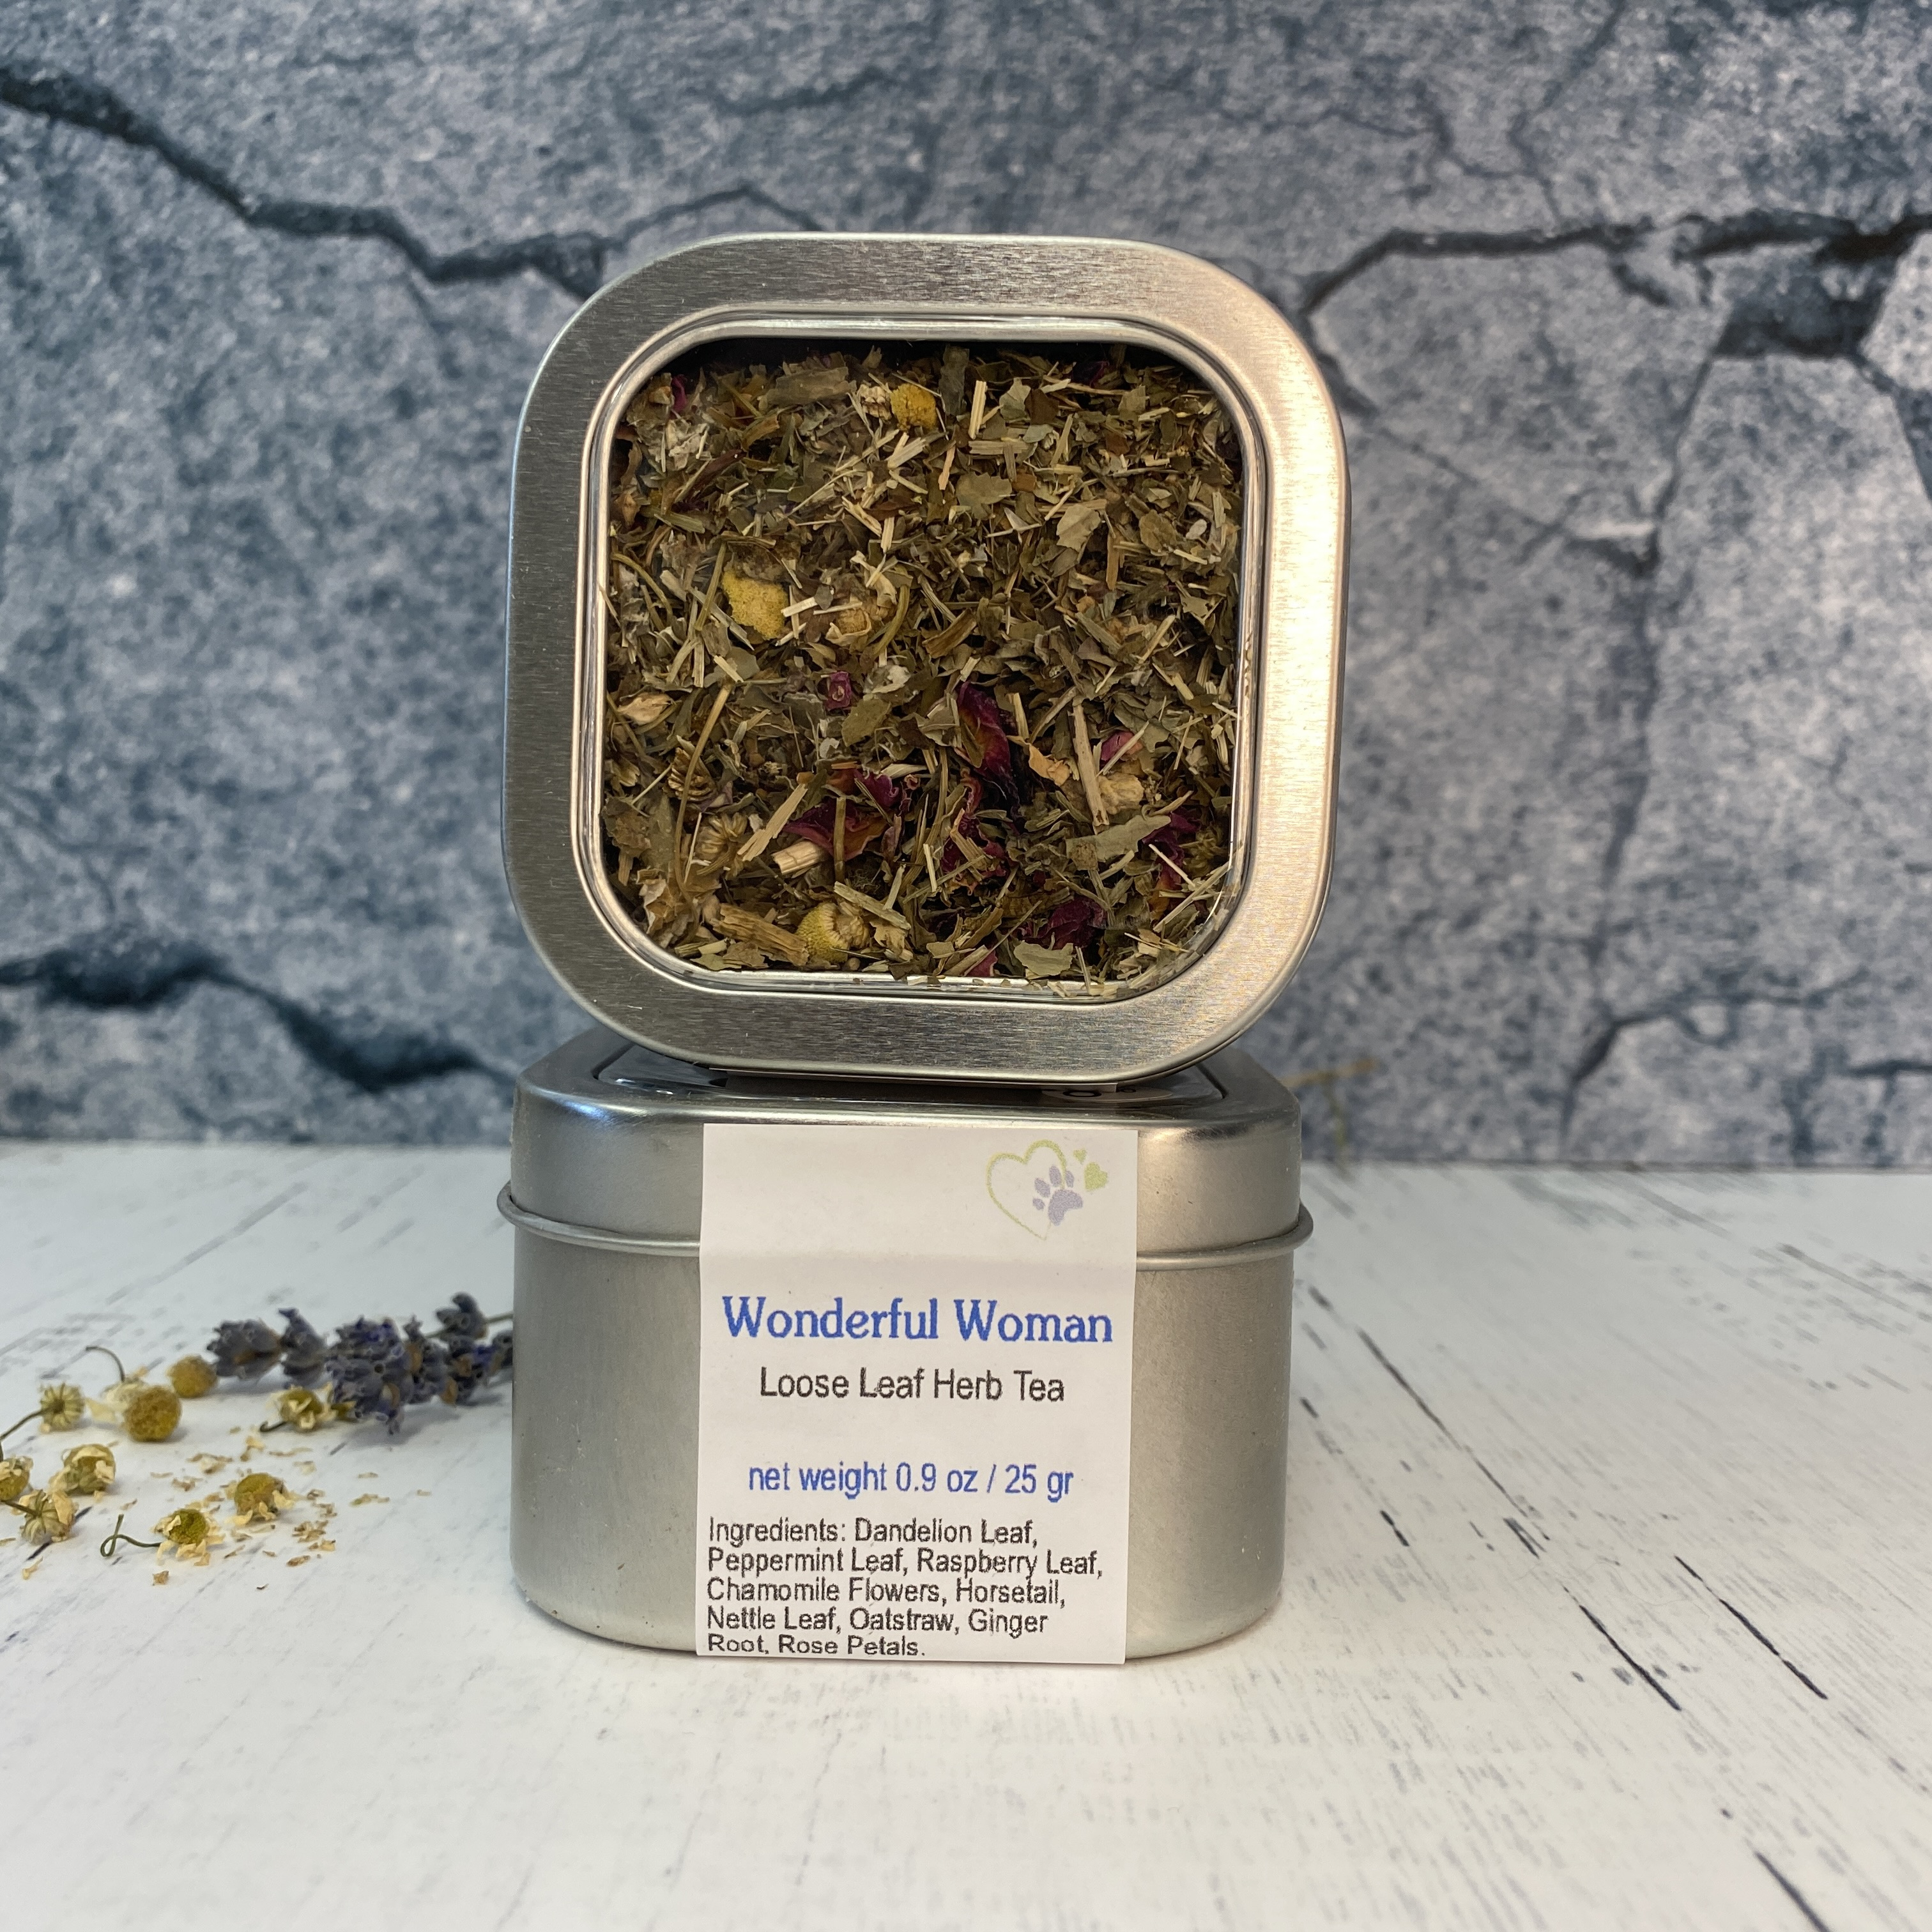 Wonderful Woman Herbal Tea